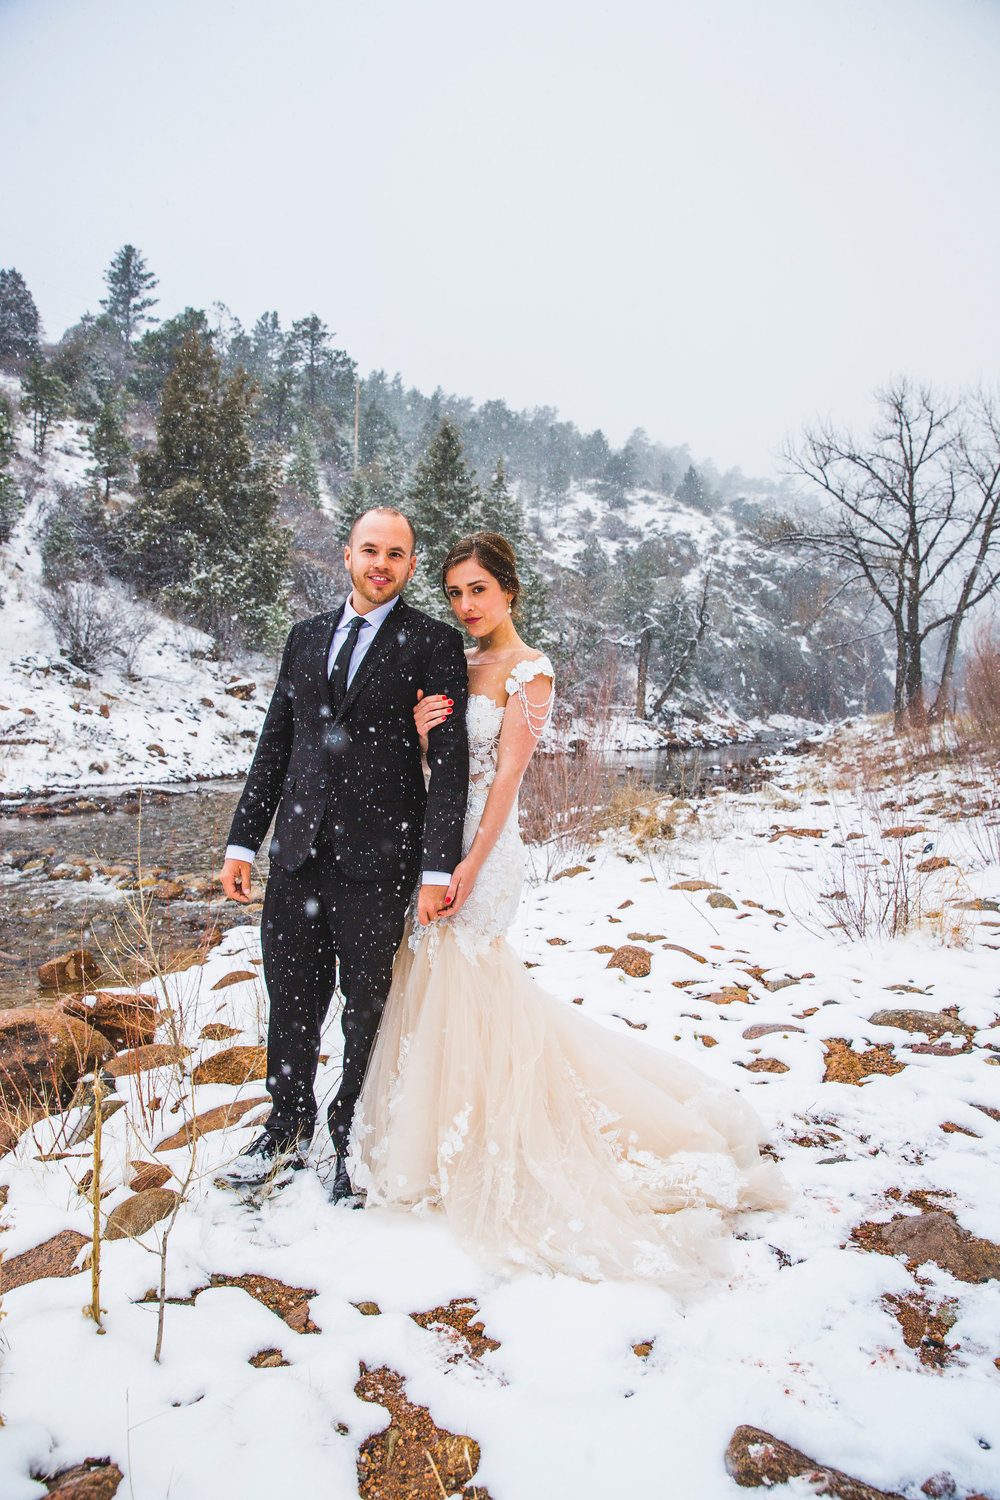 Colorado wedding, winter wedding, snow and mountains, wedding photography